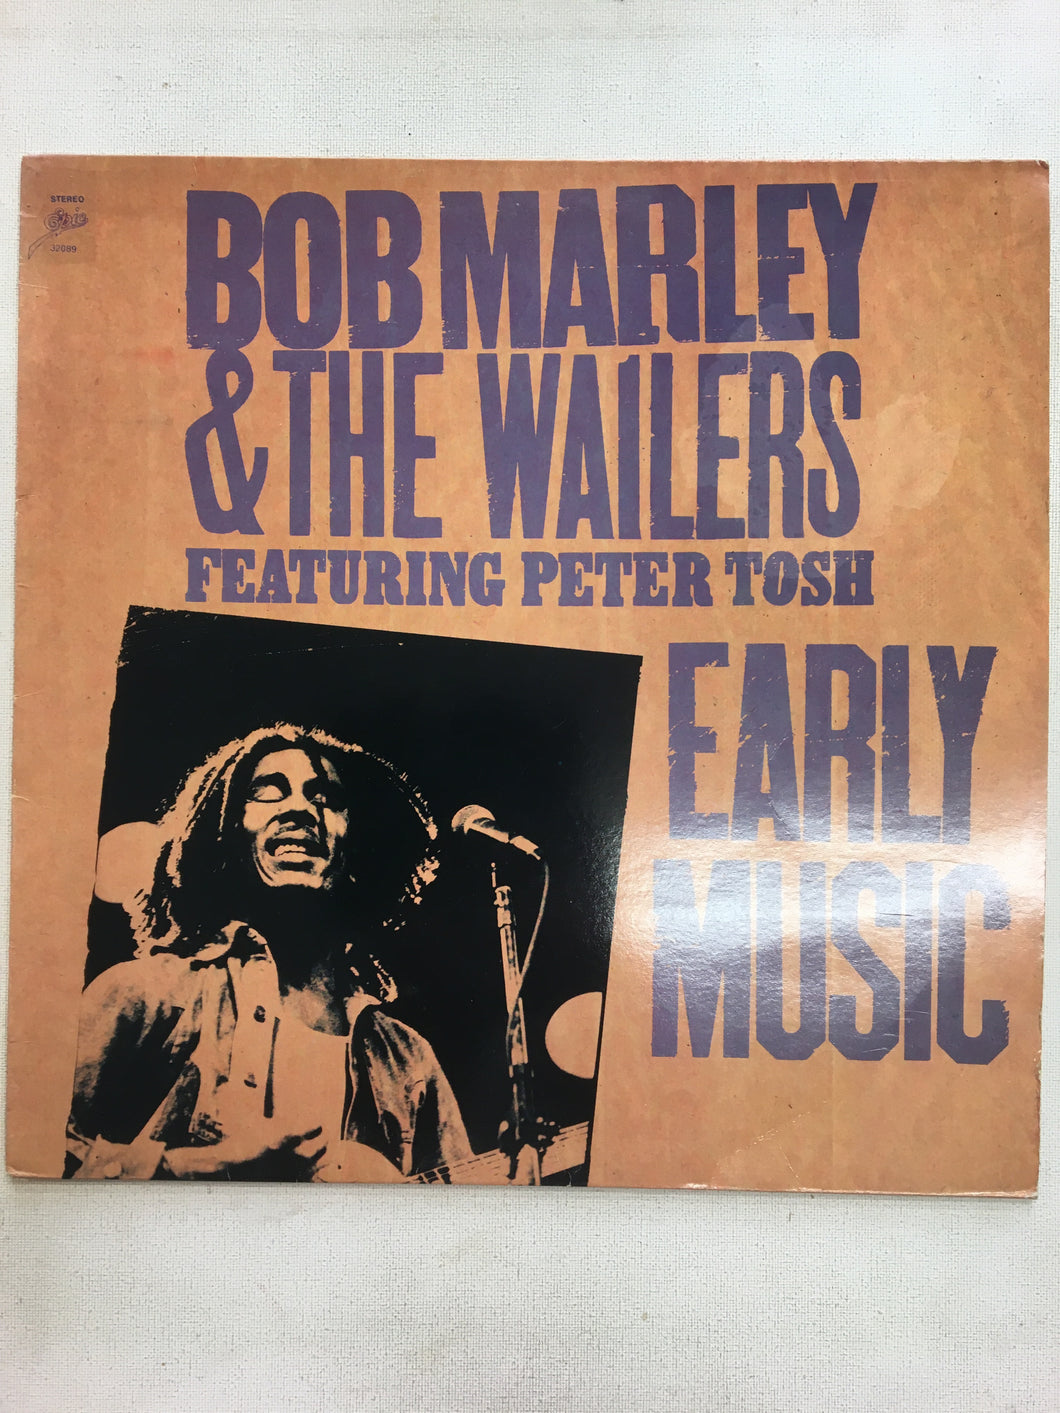 BOB MARLEY & THE WAILERS LP ; EARLY YEARS